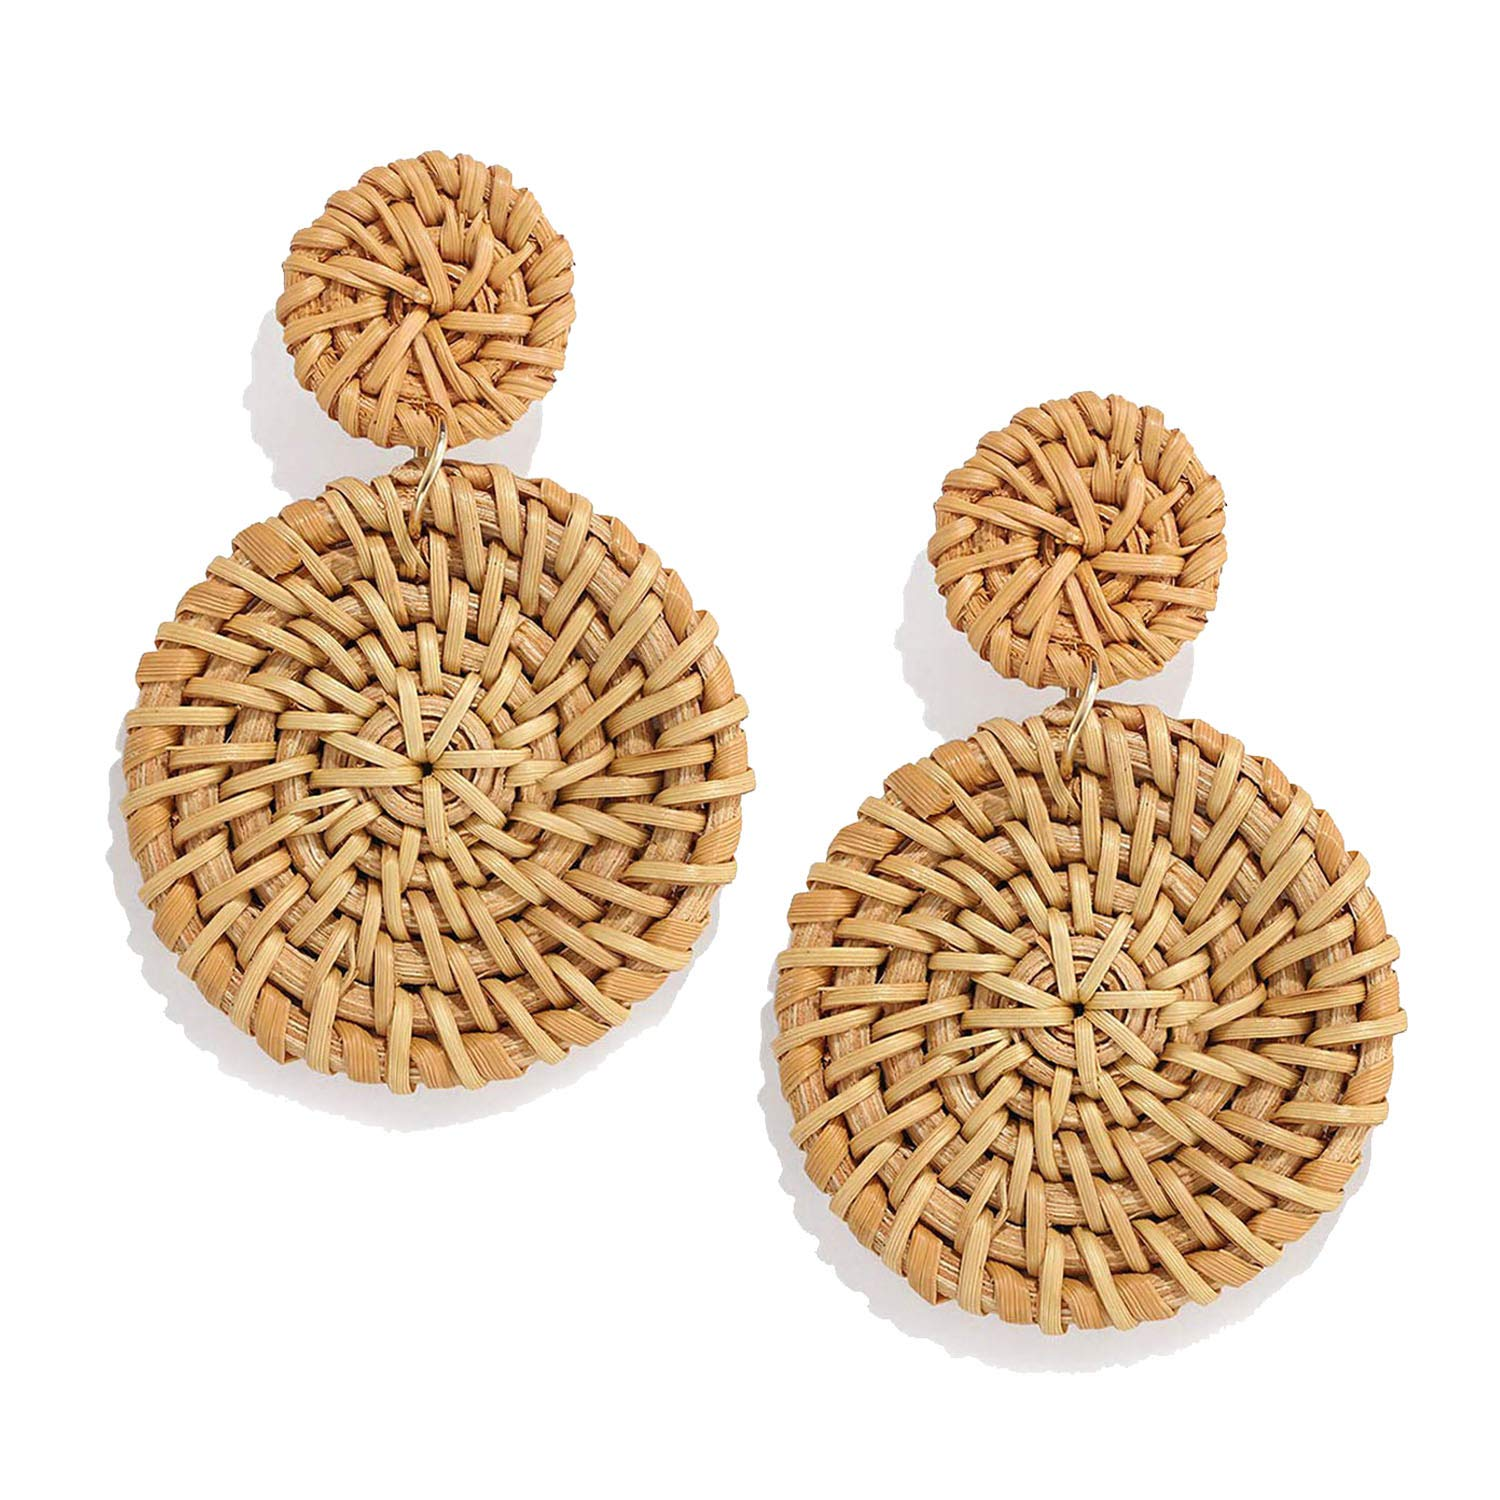 CEALXHENY Rattan Earrings for Women Handmade Straw Wicker Braid Drop Dangle Earrings Lightweight Geometric Statement Earrings